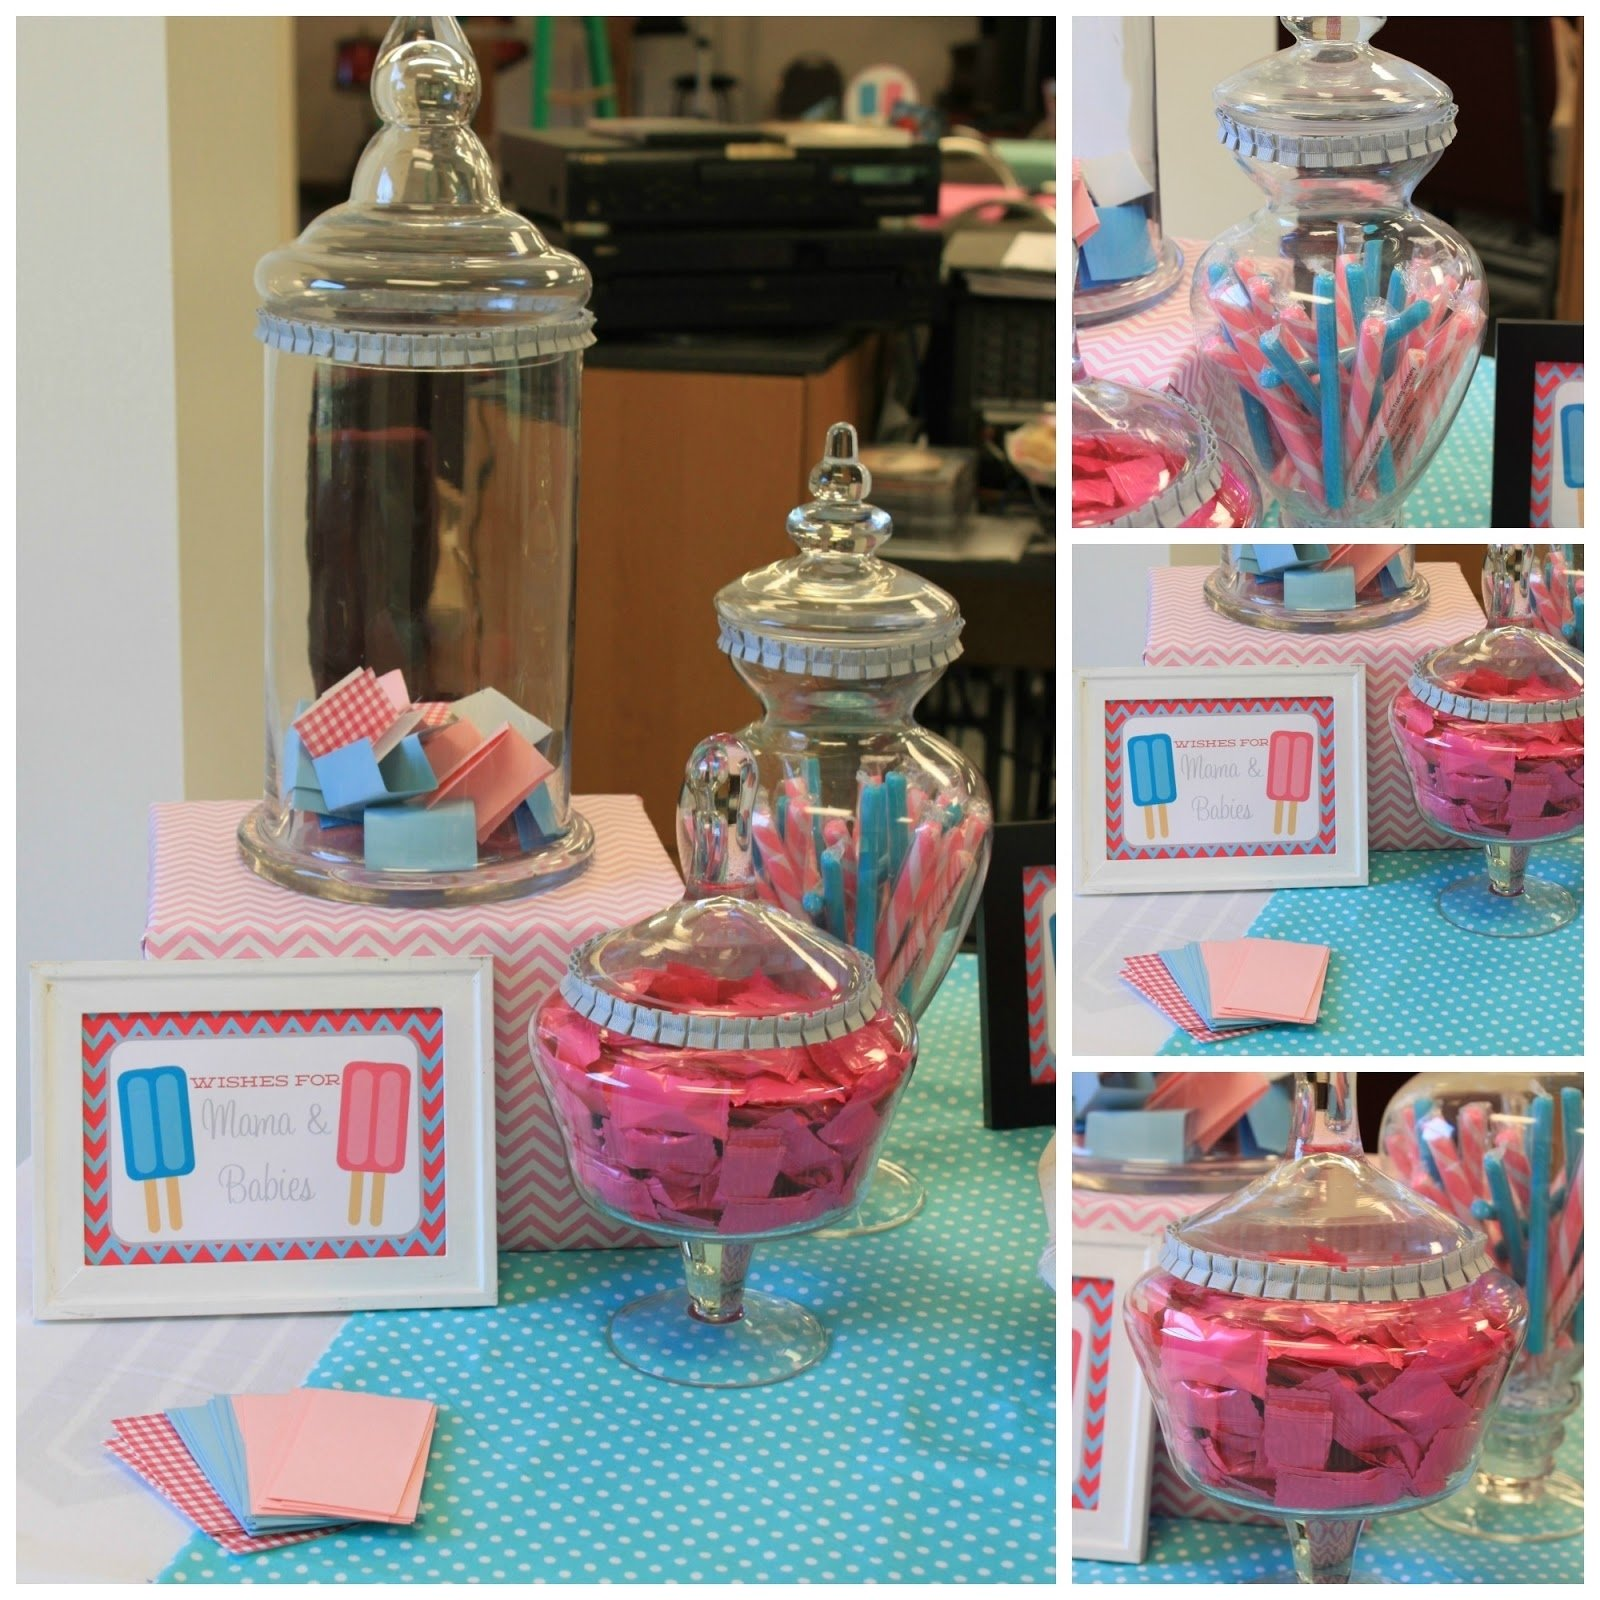 10 Cute Baby Shower Ideas For Twin Boys baby shower ideas for a boy and girl e280a2 baby showers ideas